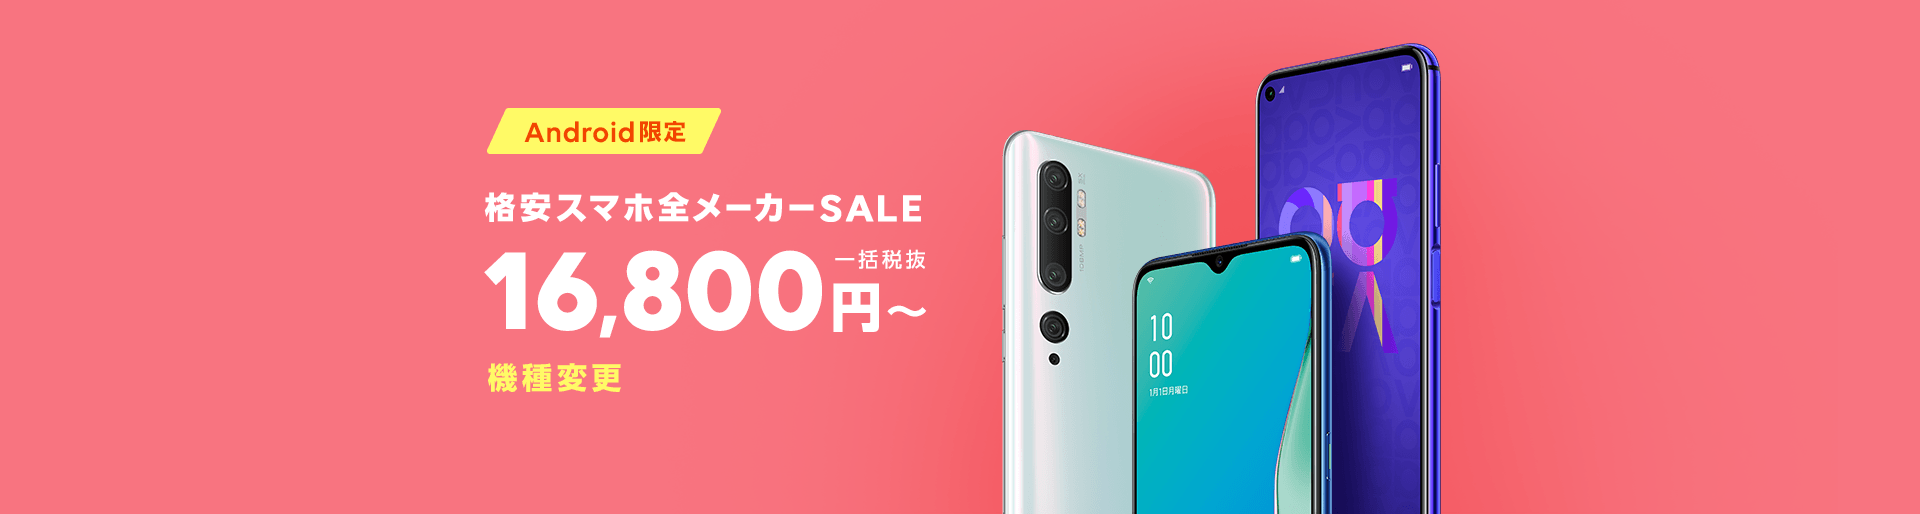 Android限定!格安スマホ全メーカーSALE